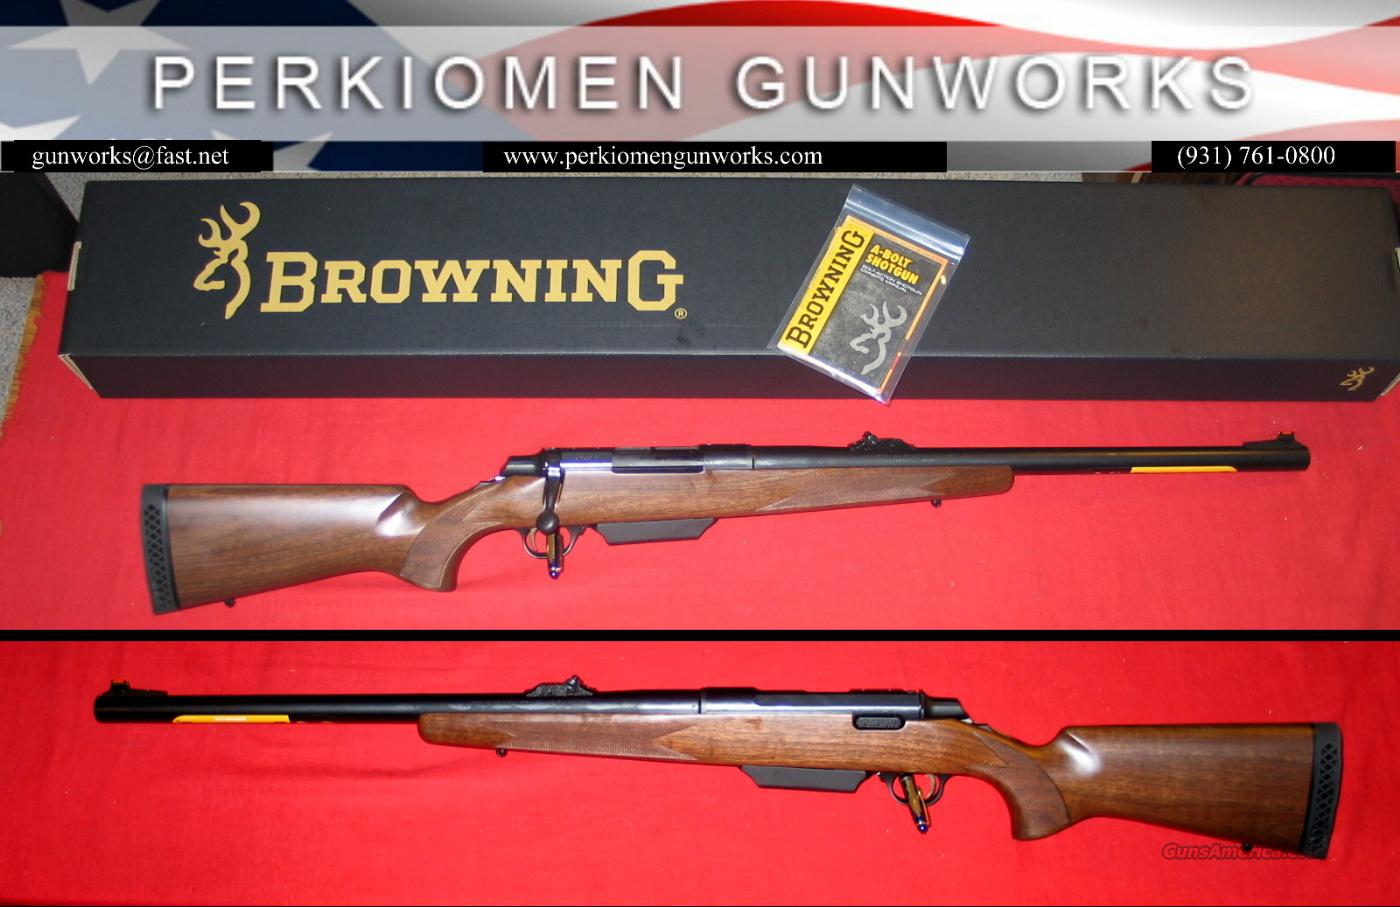 A-Bolt Shotgun Hunter 12ga, Walnut - NIB  Guns > Shotguns > Browning Shotguns > Single Barrel